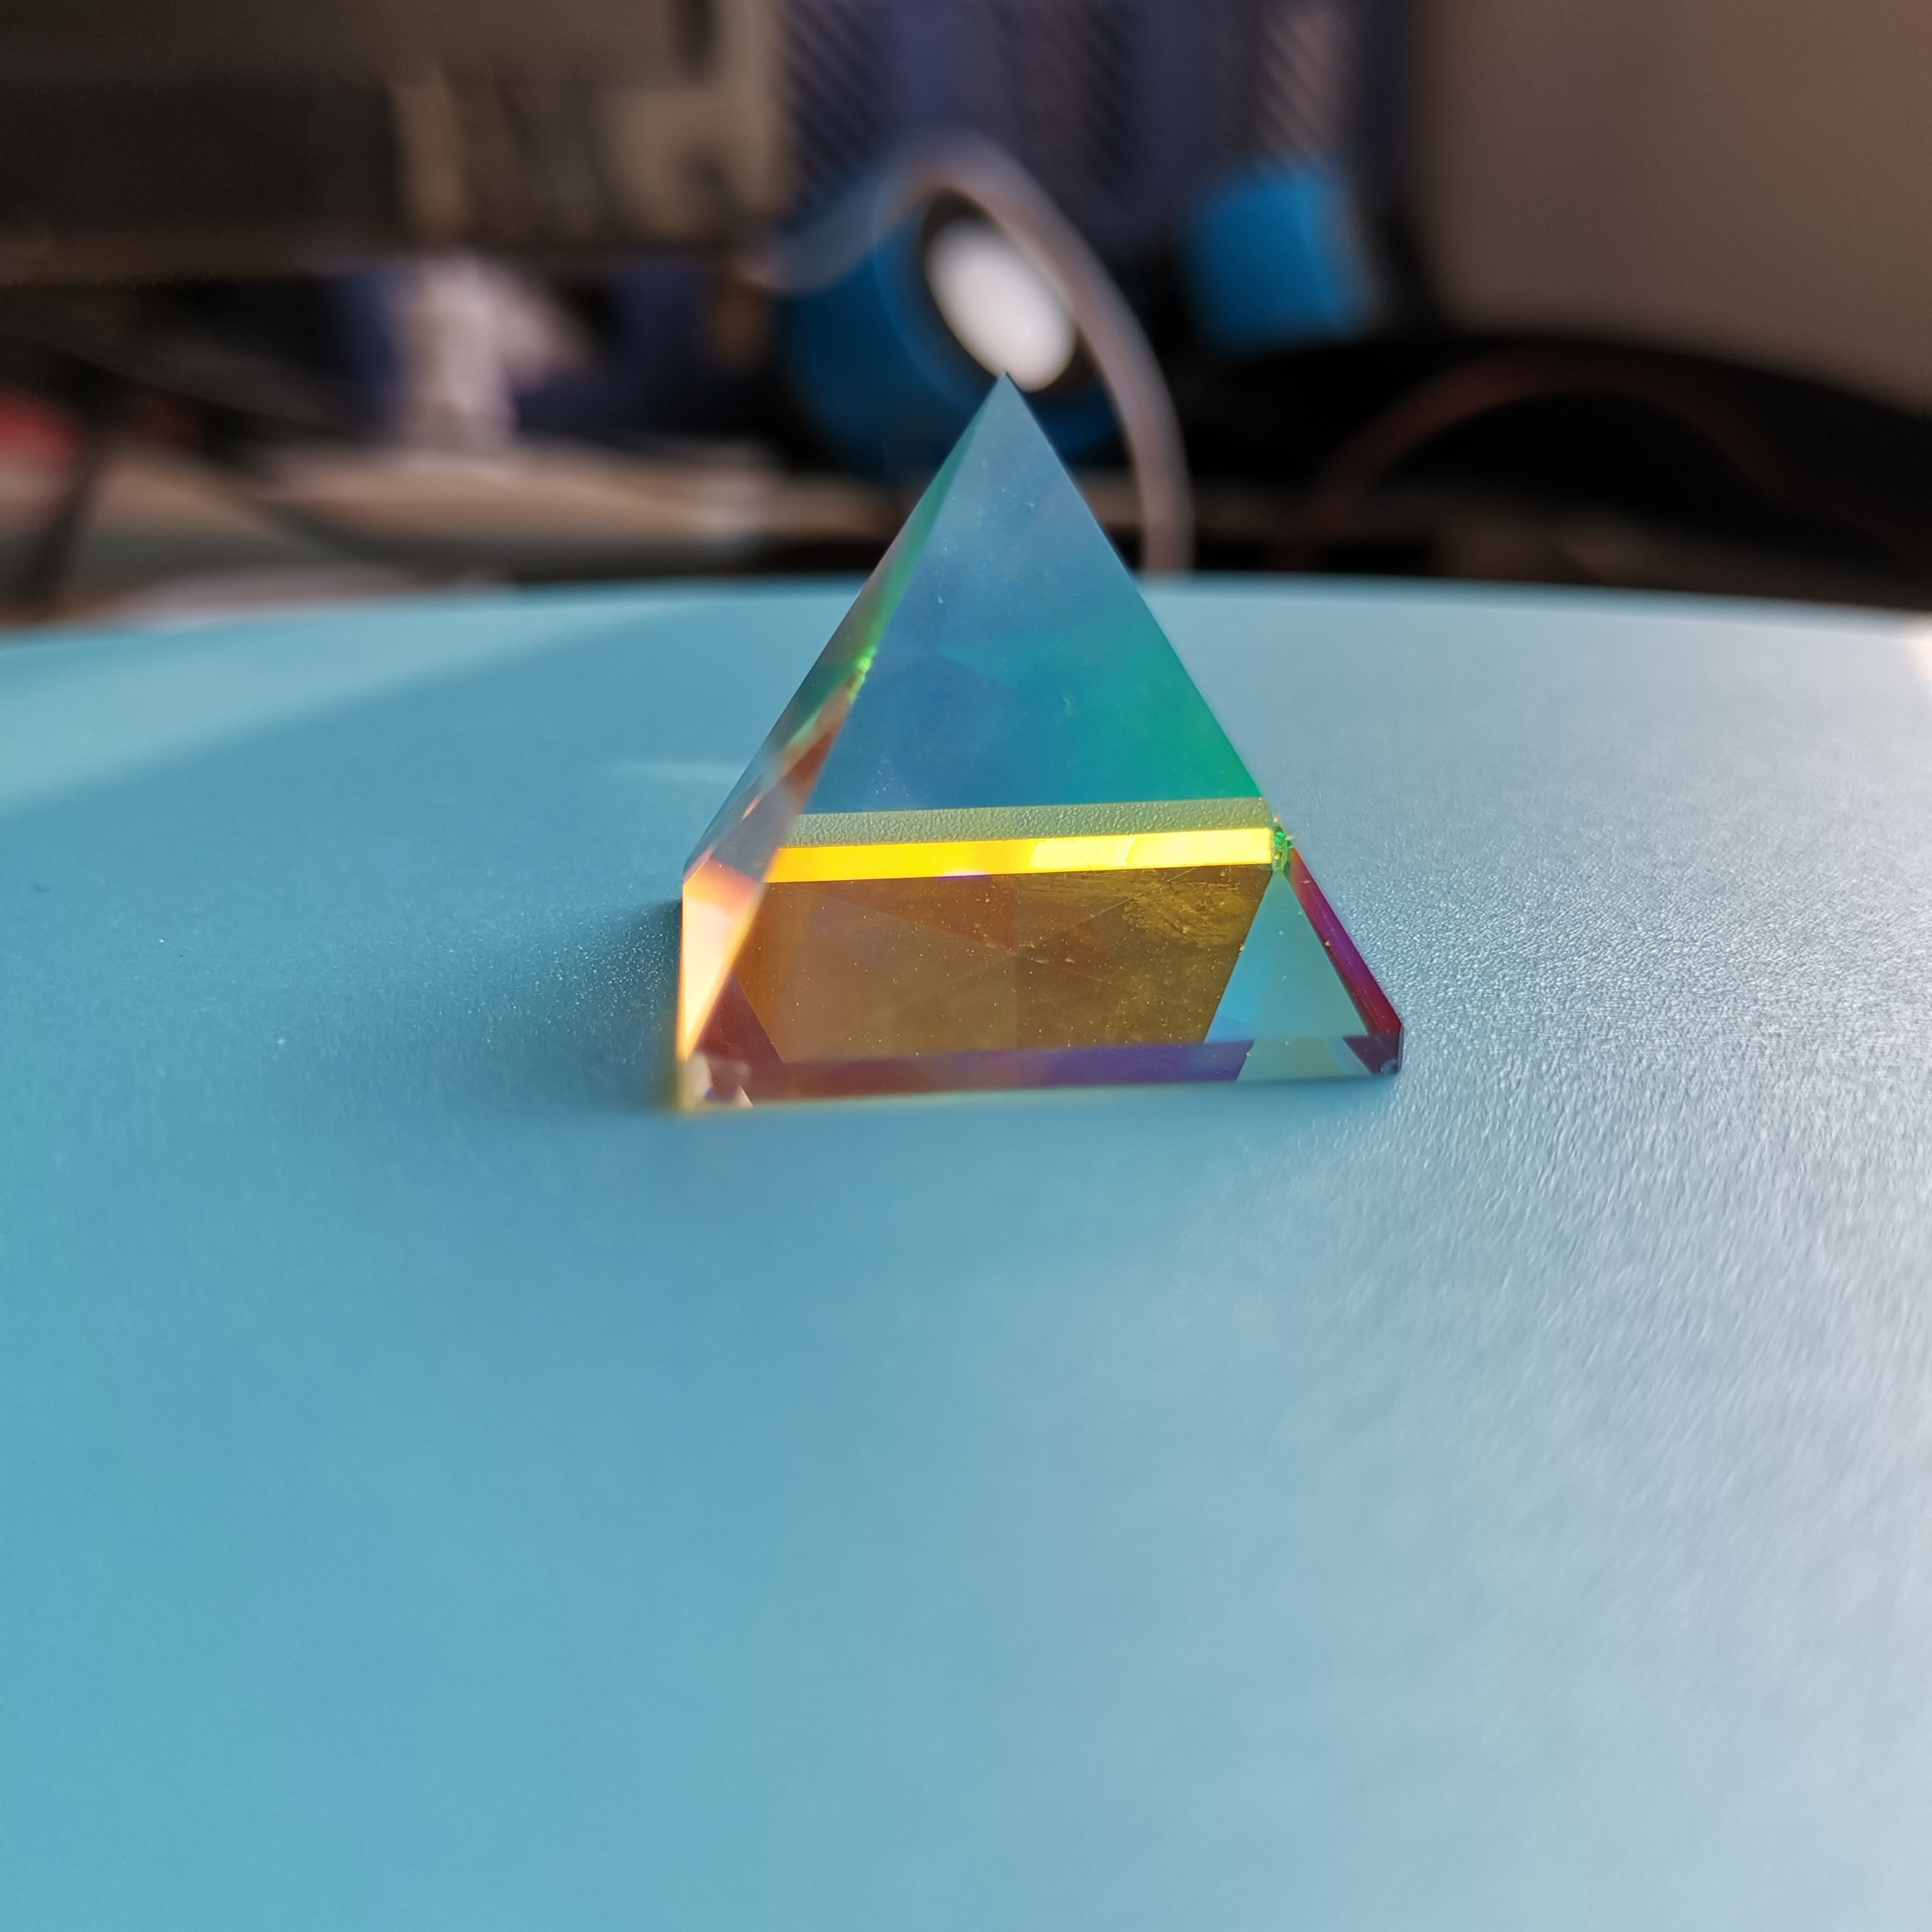 Colored Pyramid Prism Optical K9 Glass Student Experiment Instrument Tool Christmas Gift Home Decoration